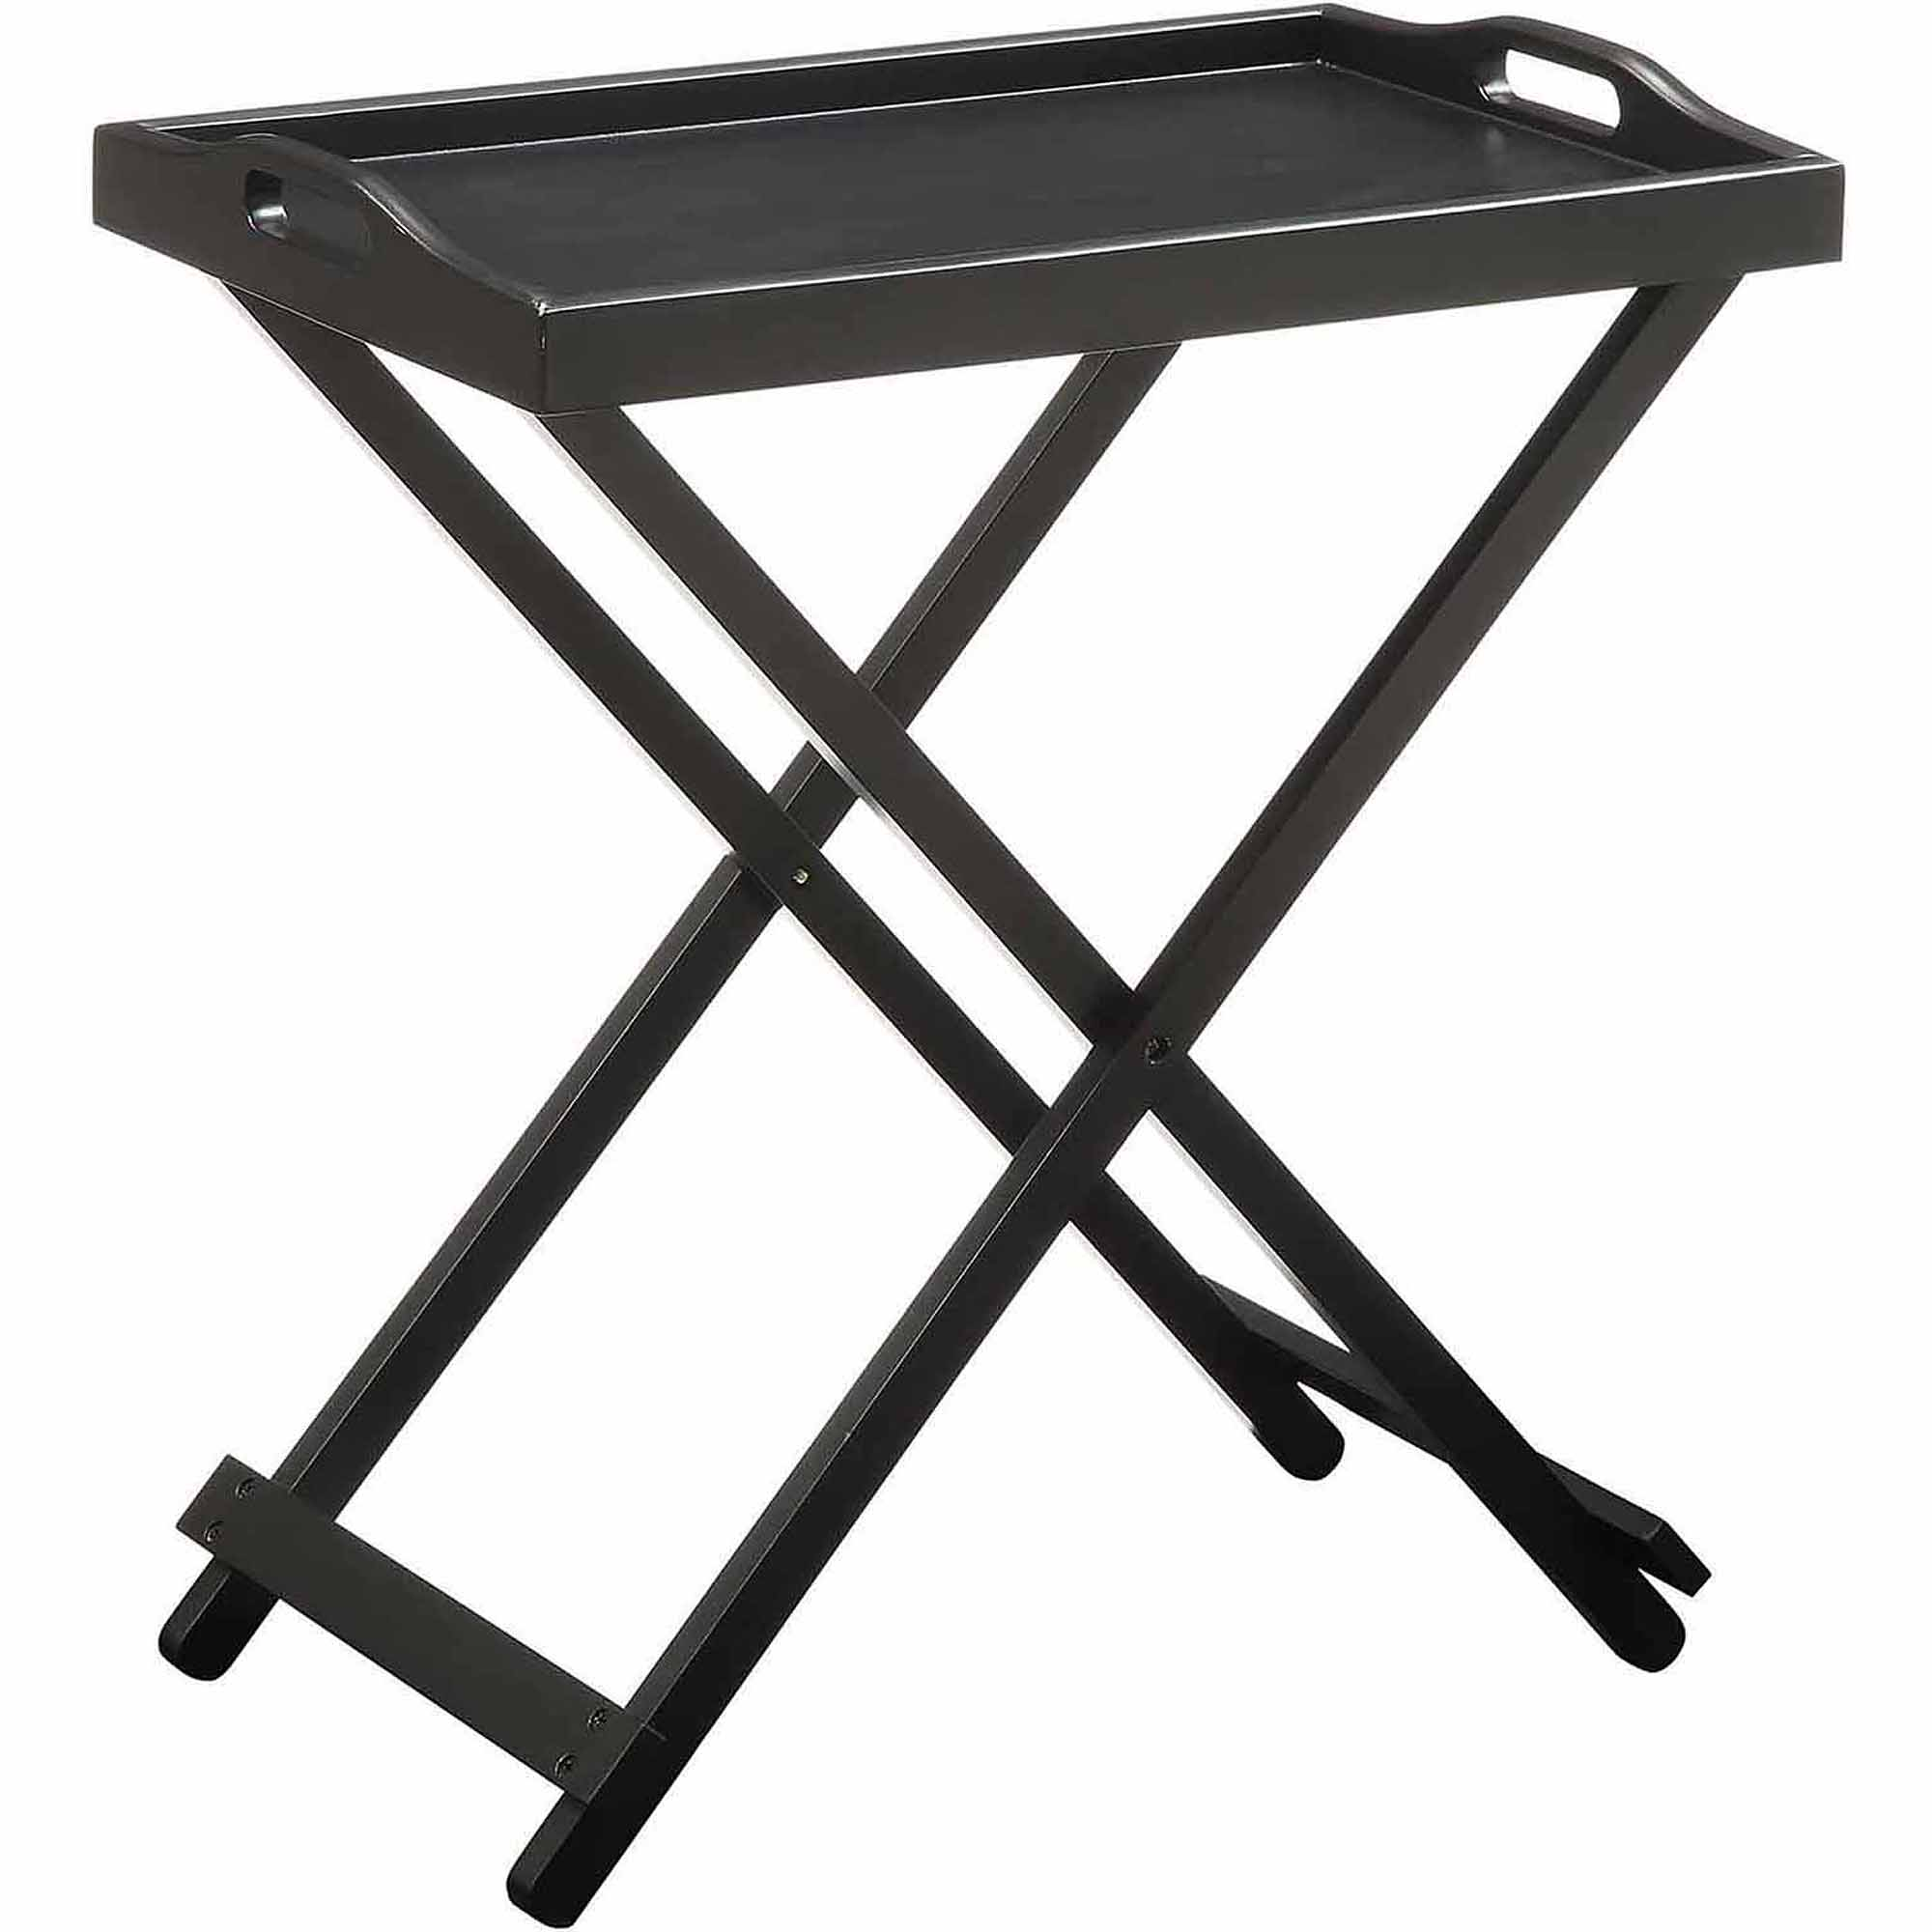 Convenience Concepts Designs2go Folding Tray Table Multiple Colors